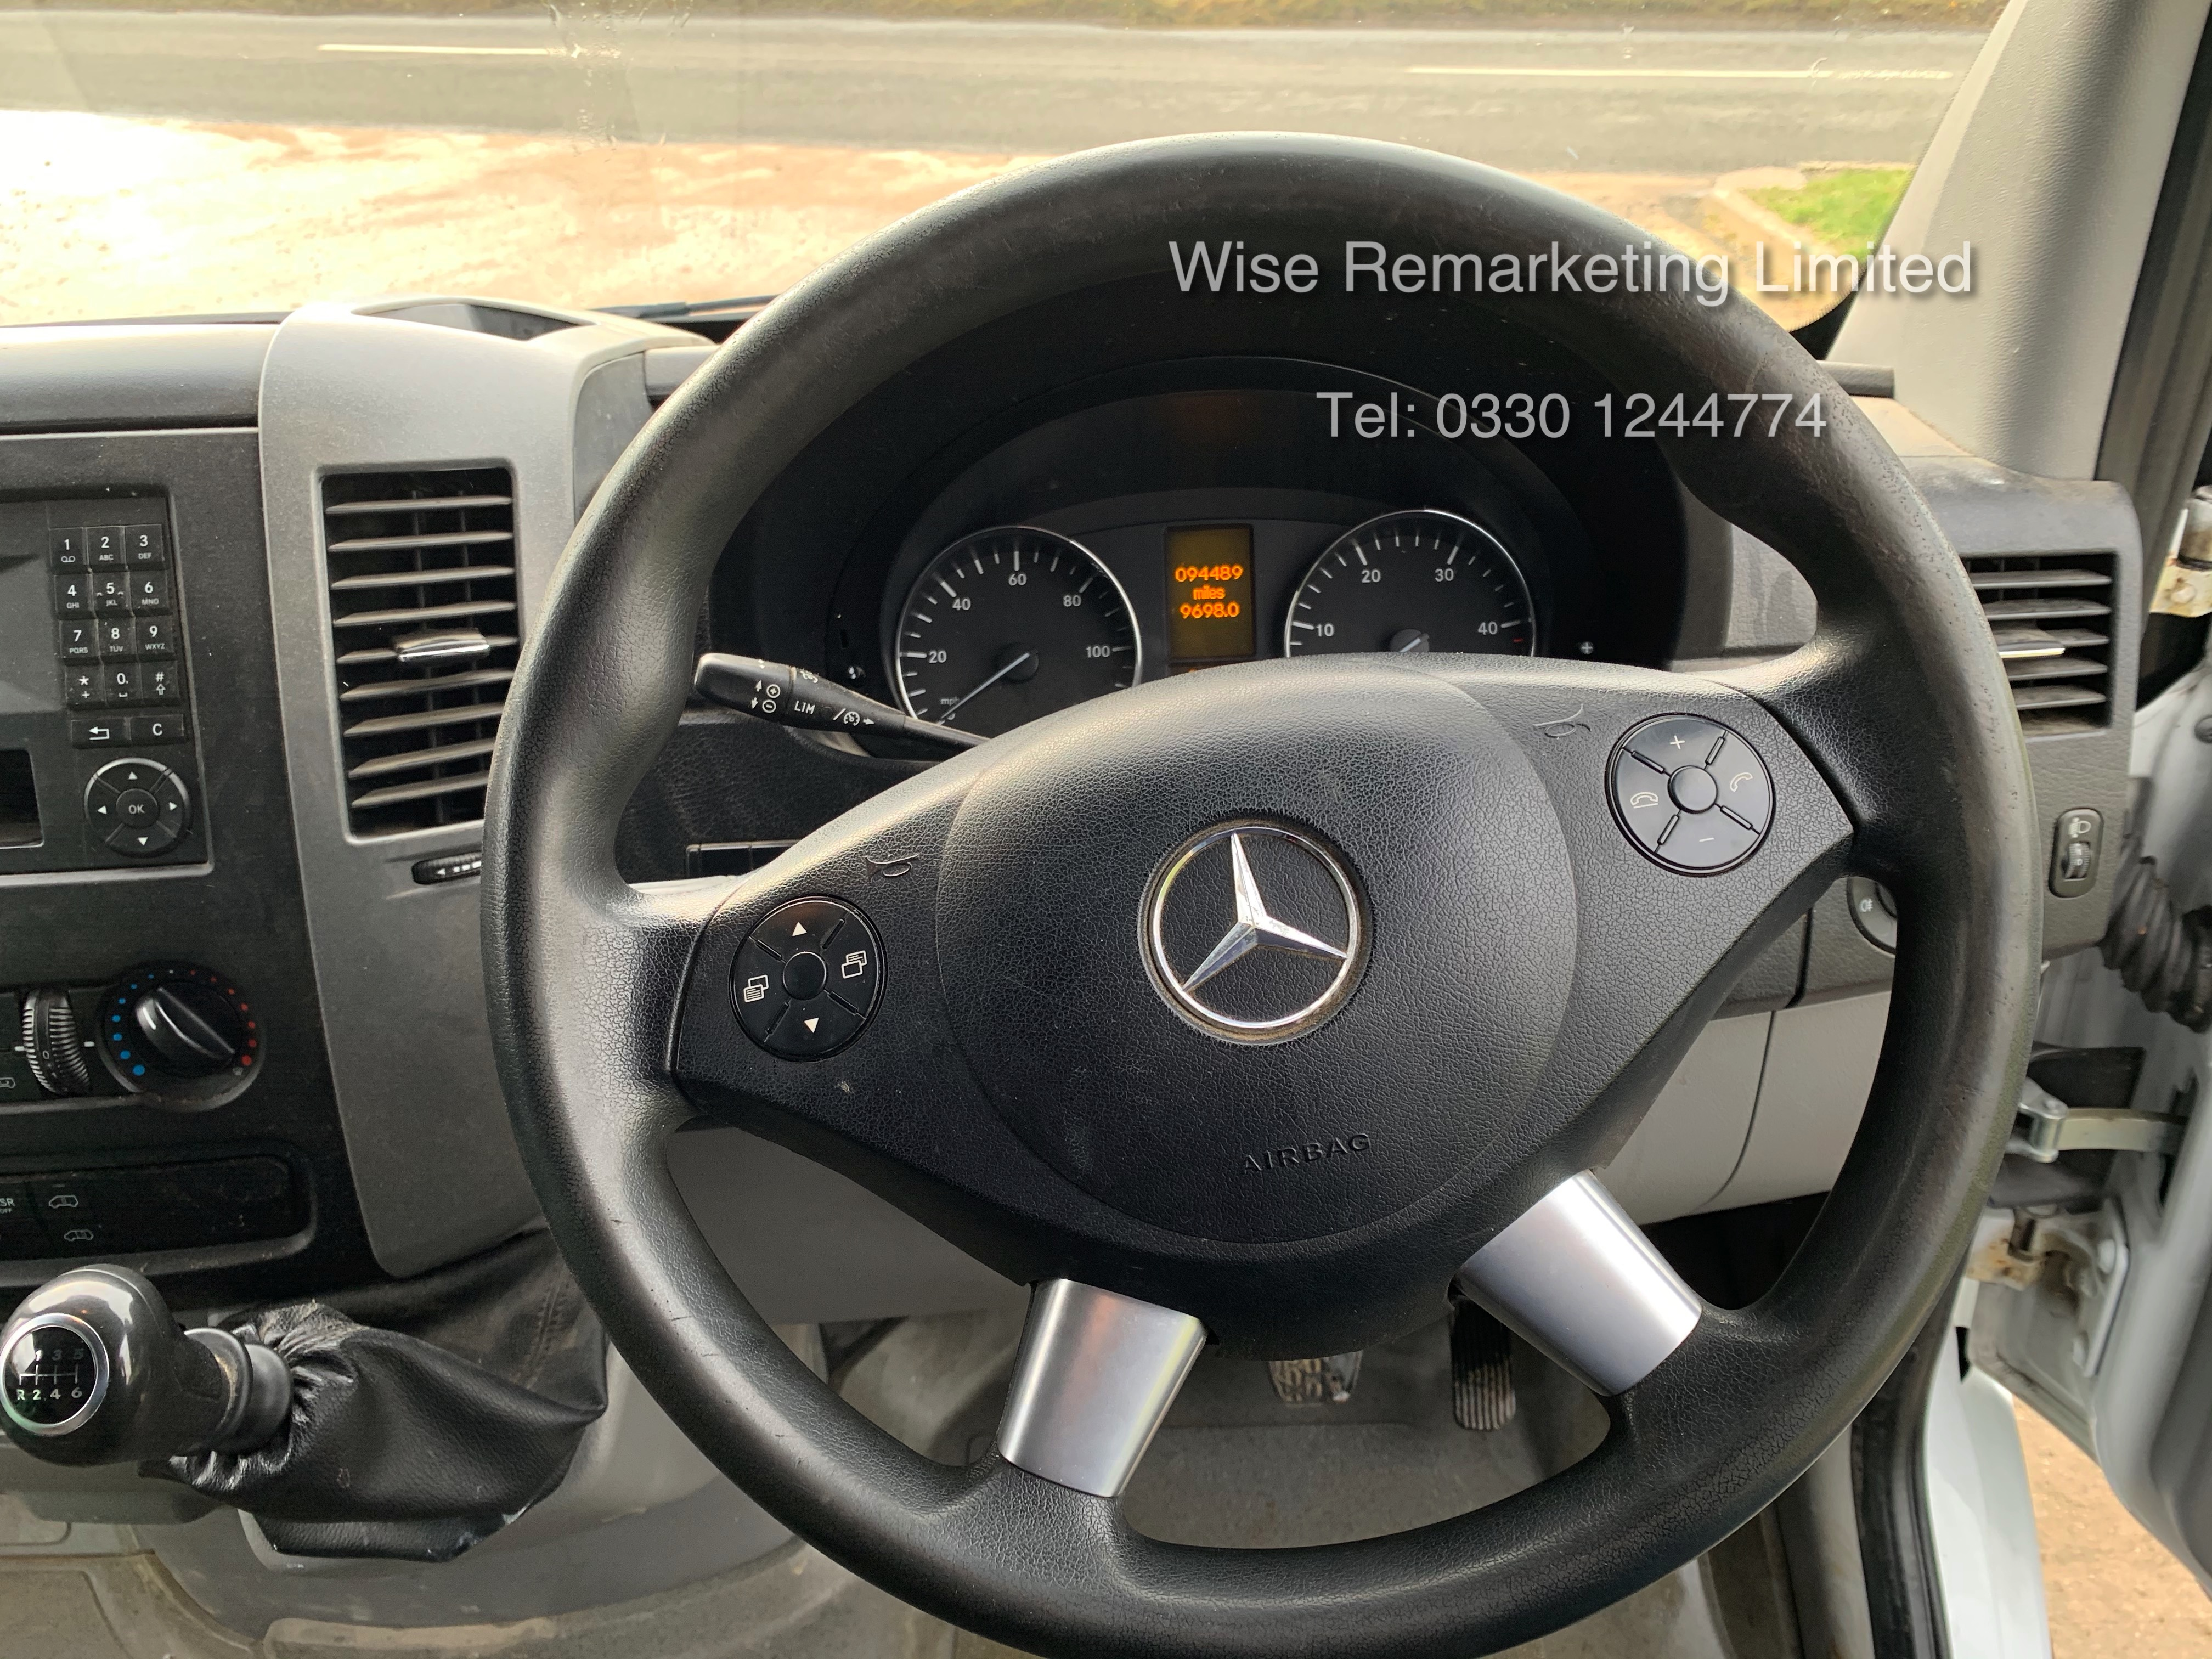 *Reserve Met* Mercedes Sprinter 313 CDI 2.1TD - 2015 15 Reg - Company Maintained - Low Miles - Image 13 of 16